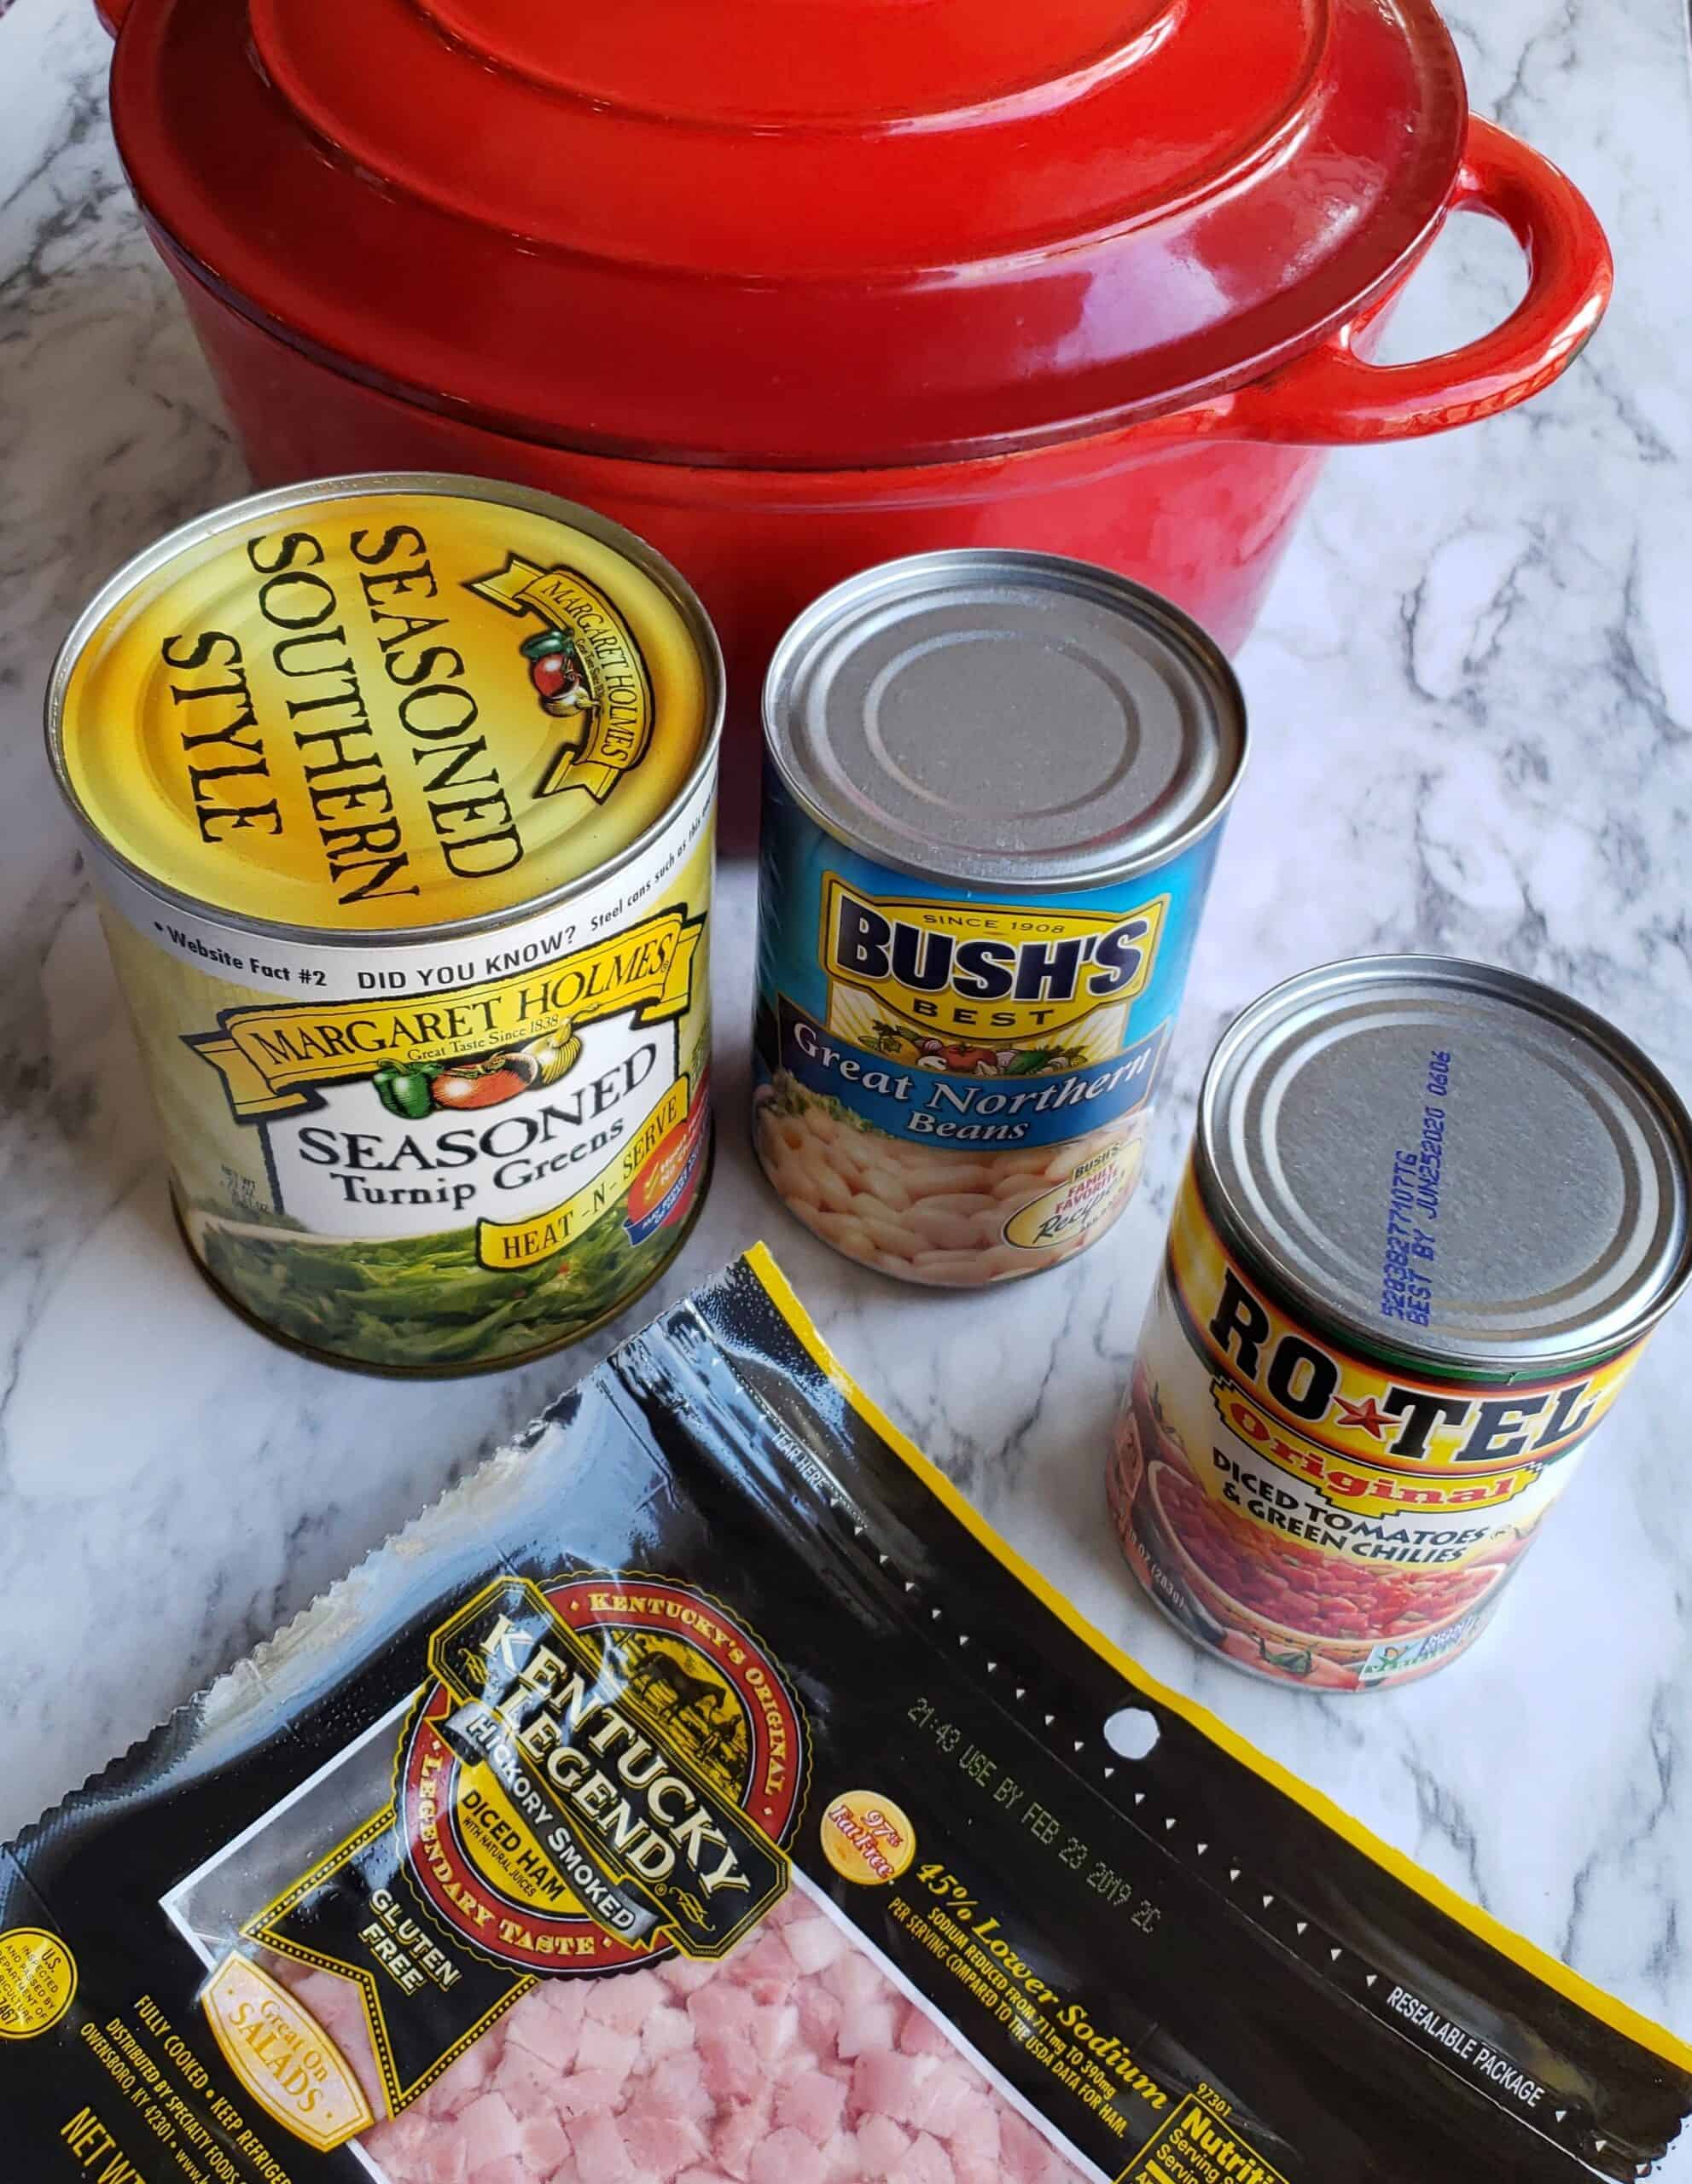 Shortcut Turnip Greens Soup is made with just 4 ingredients and 3 of them are cans of veggies but it tastes like fresh greens were cooked low and slow all day. Cans of turnip greens, great northern bean, Rotel tomatoes, diced ham with a red cast iron dutch oven.